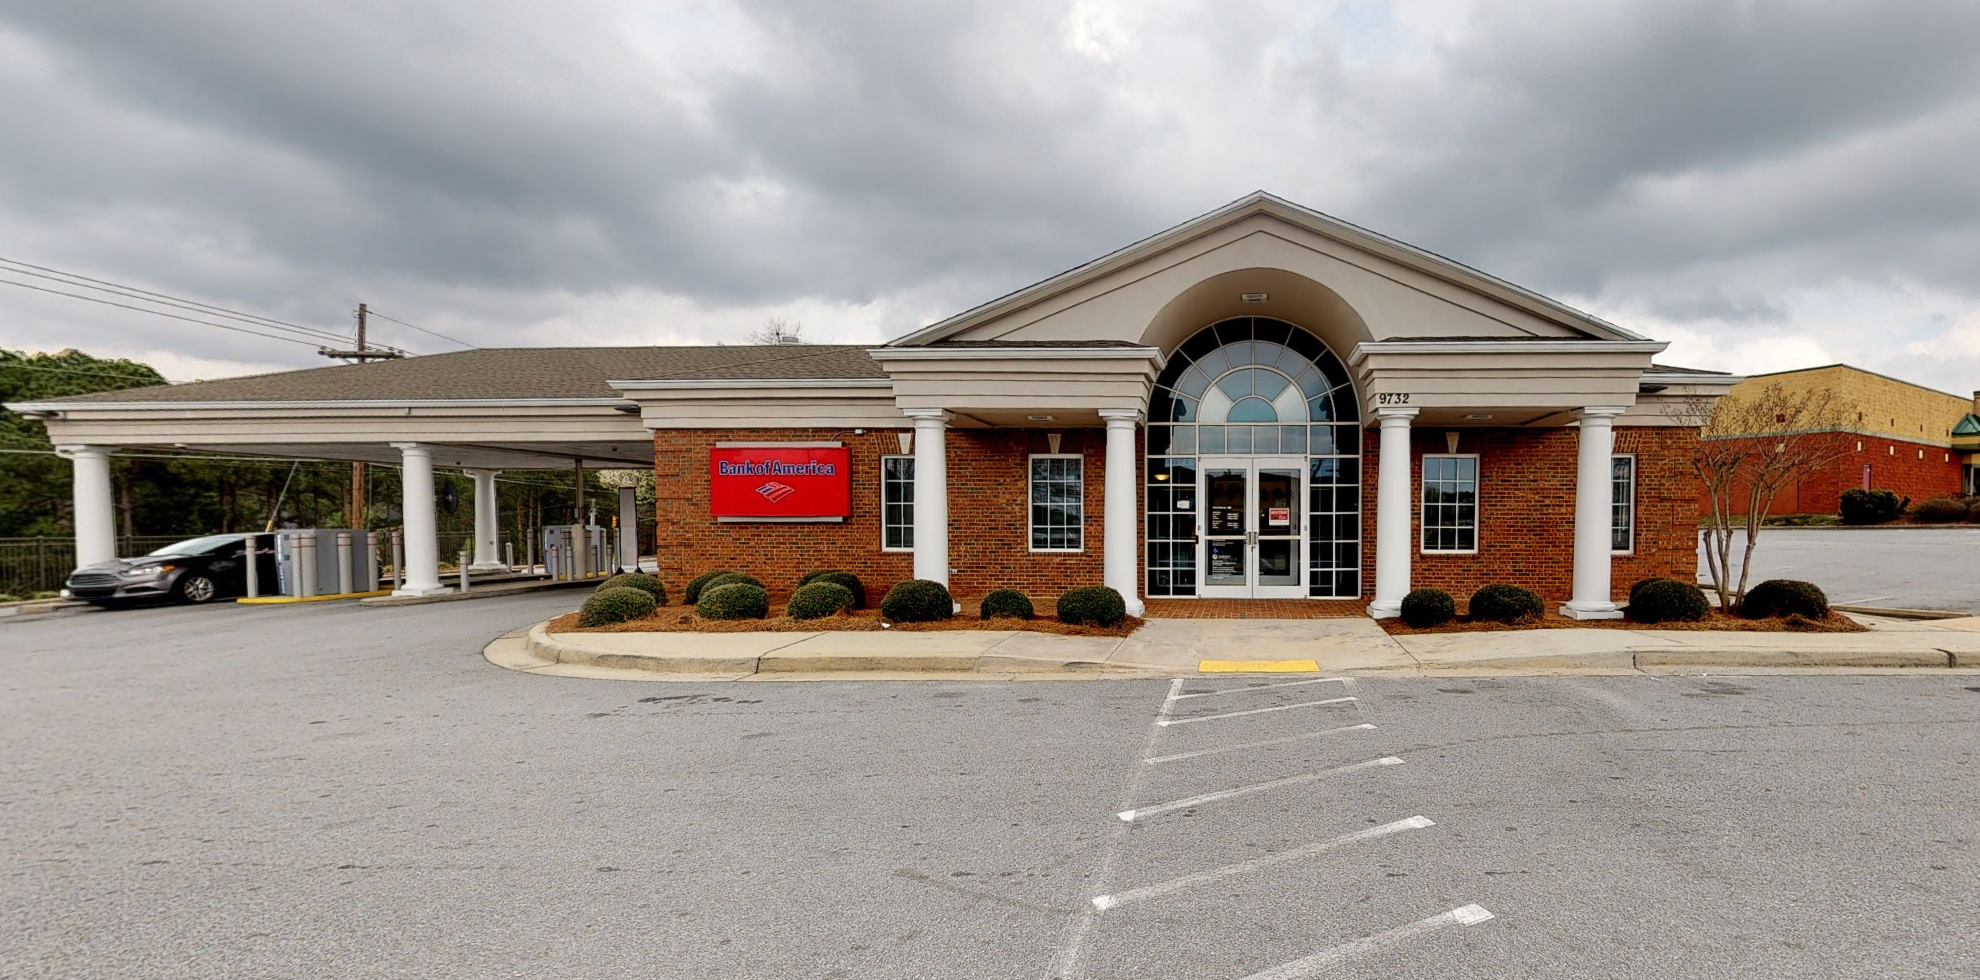 Bank of America financial center with drive-thru ATM   9732 Two Notch Rd, Columbia, SC 29223